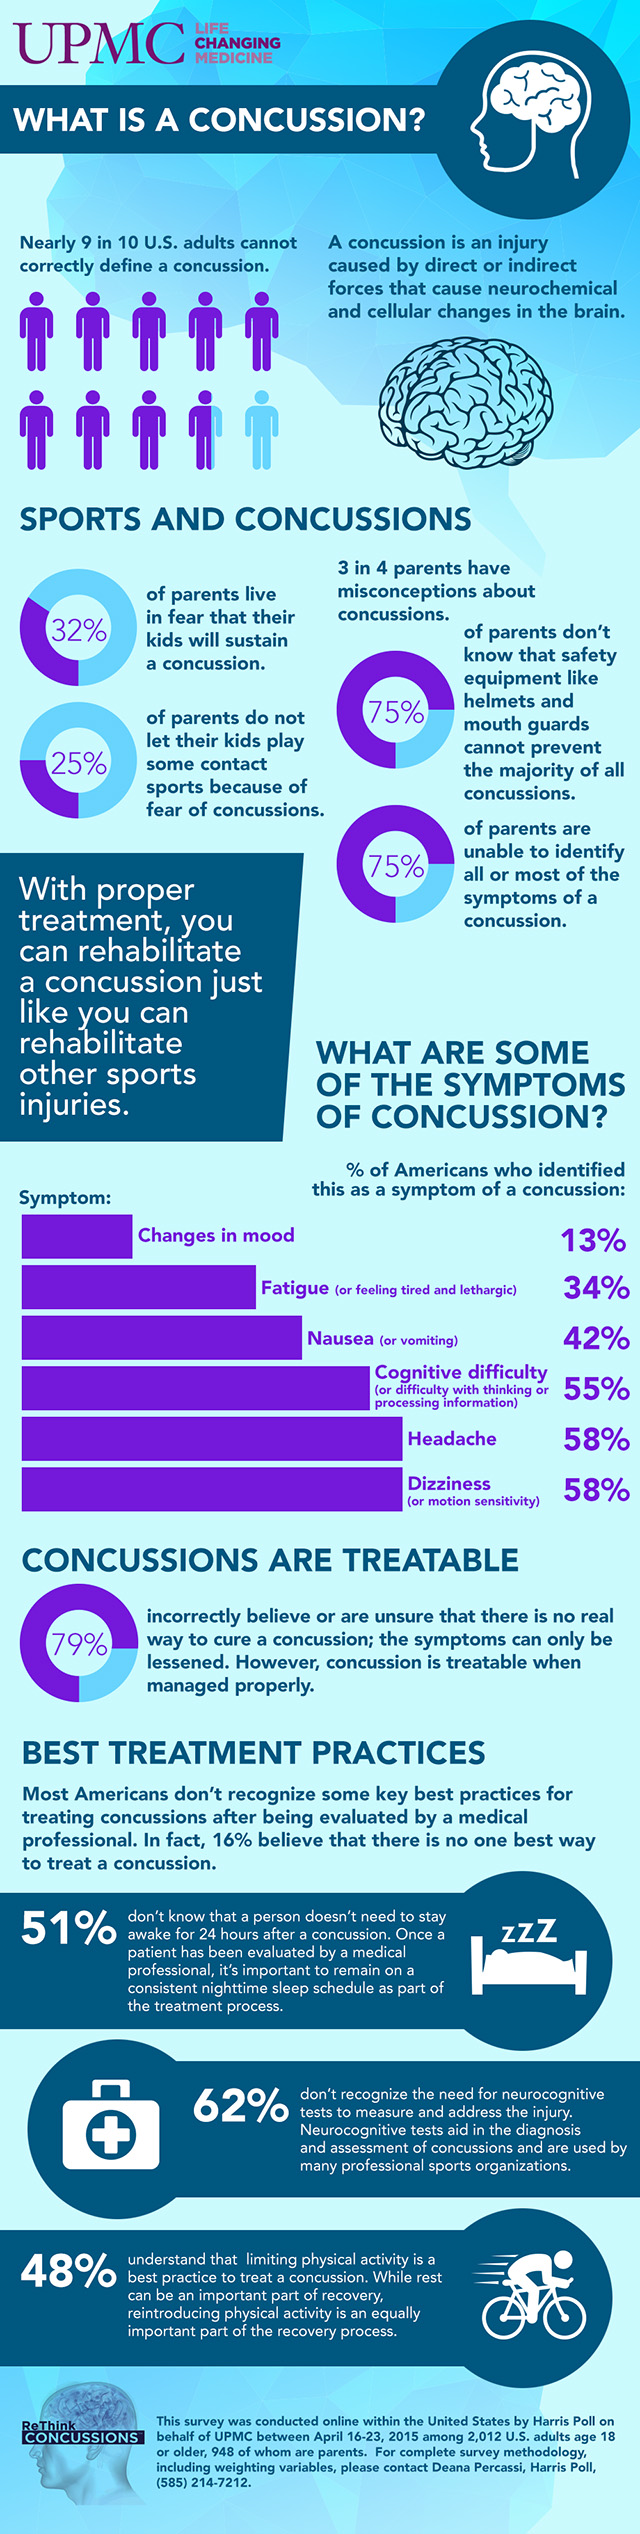 Concussion survey infographic